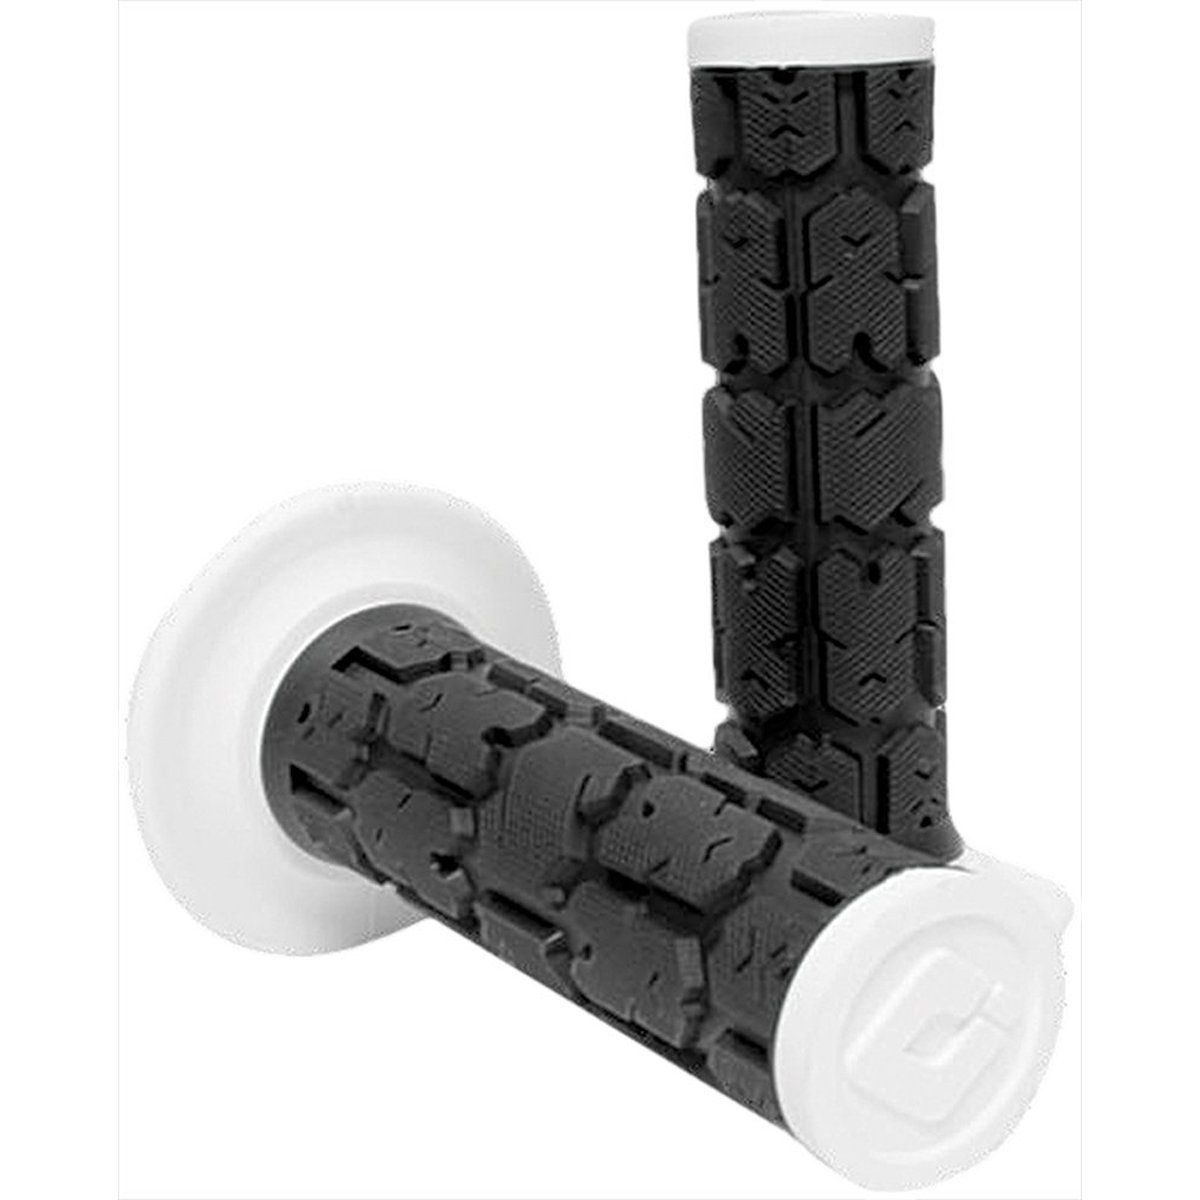 ODI Rogue Dual-Ply Motocross/Dirt Bike Motorcycle Hand Grips - Black/White / One Size